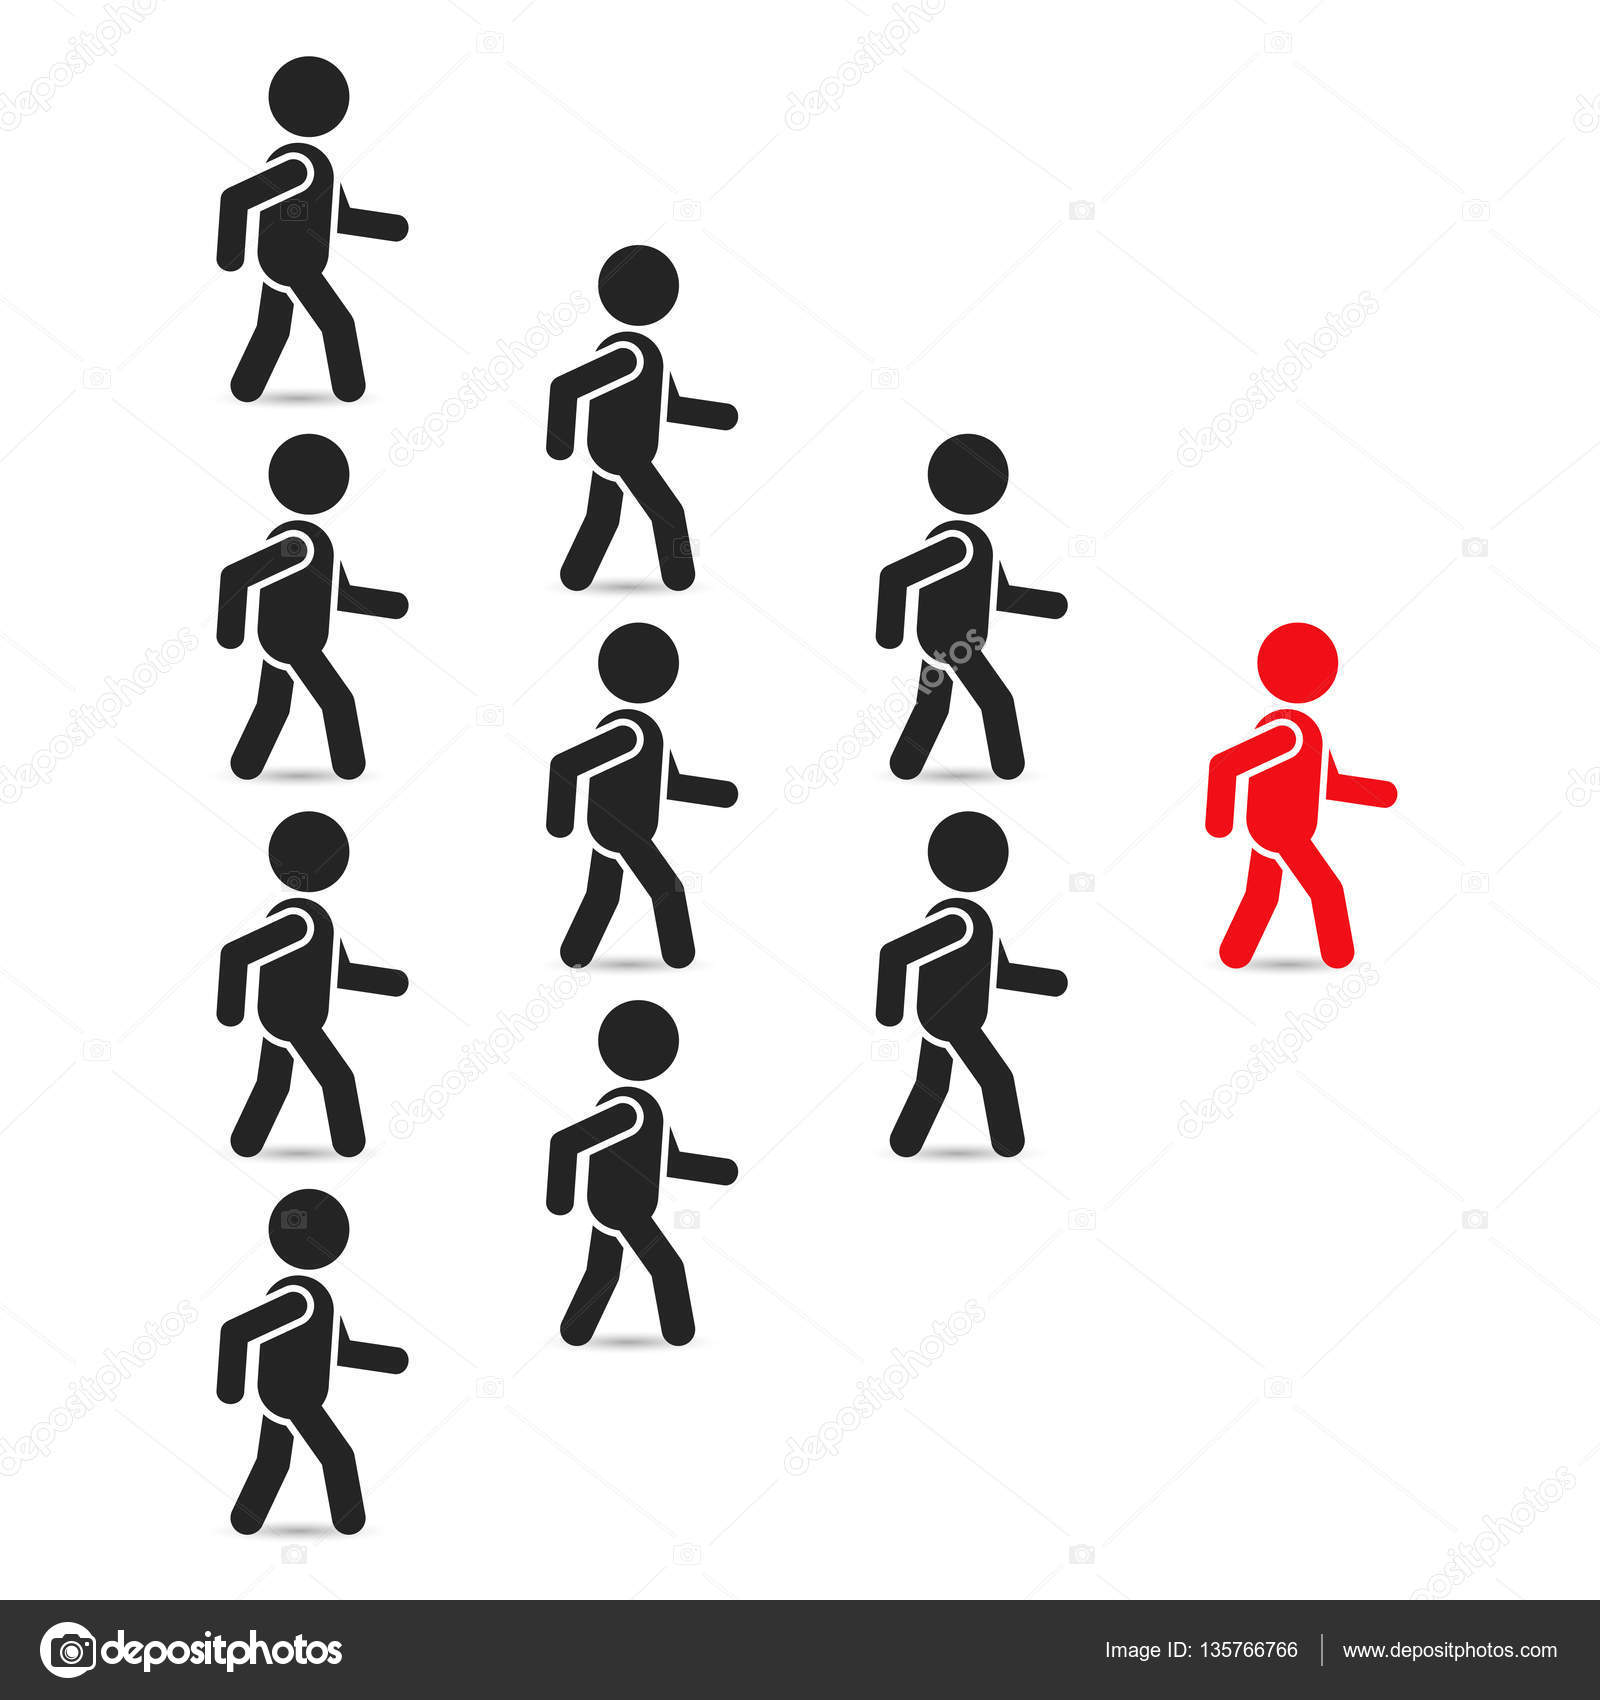 Leadership Business Concept With Crowd Following Behind